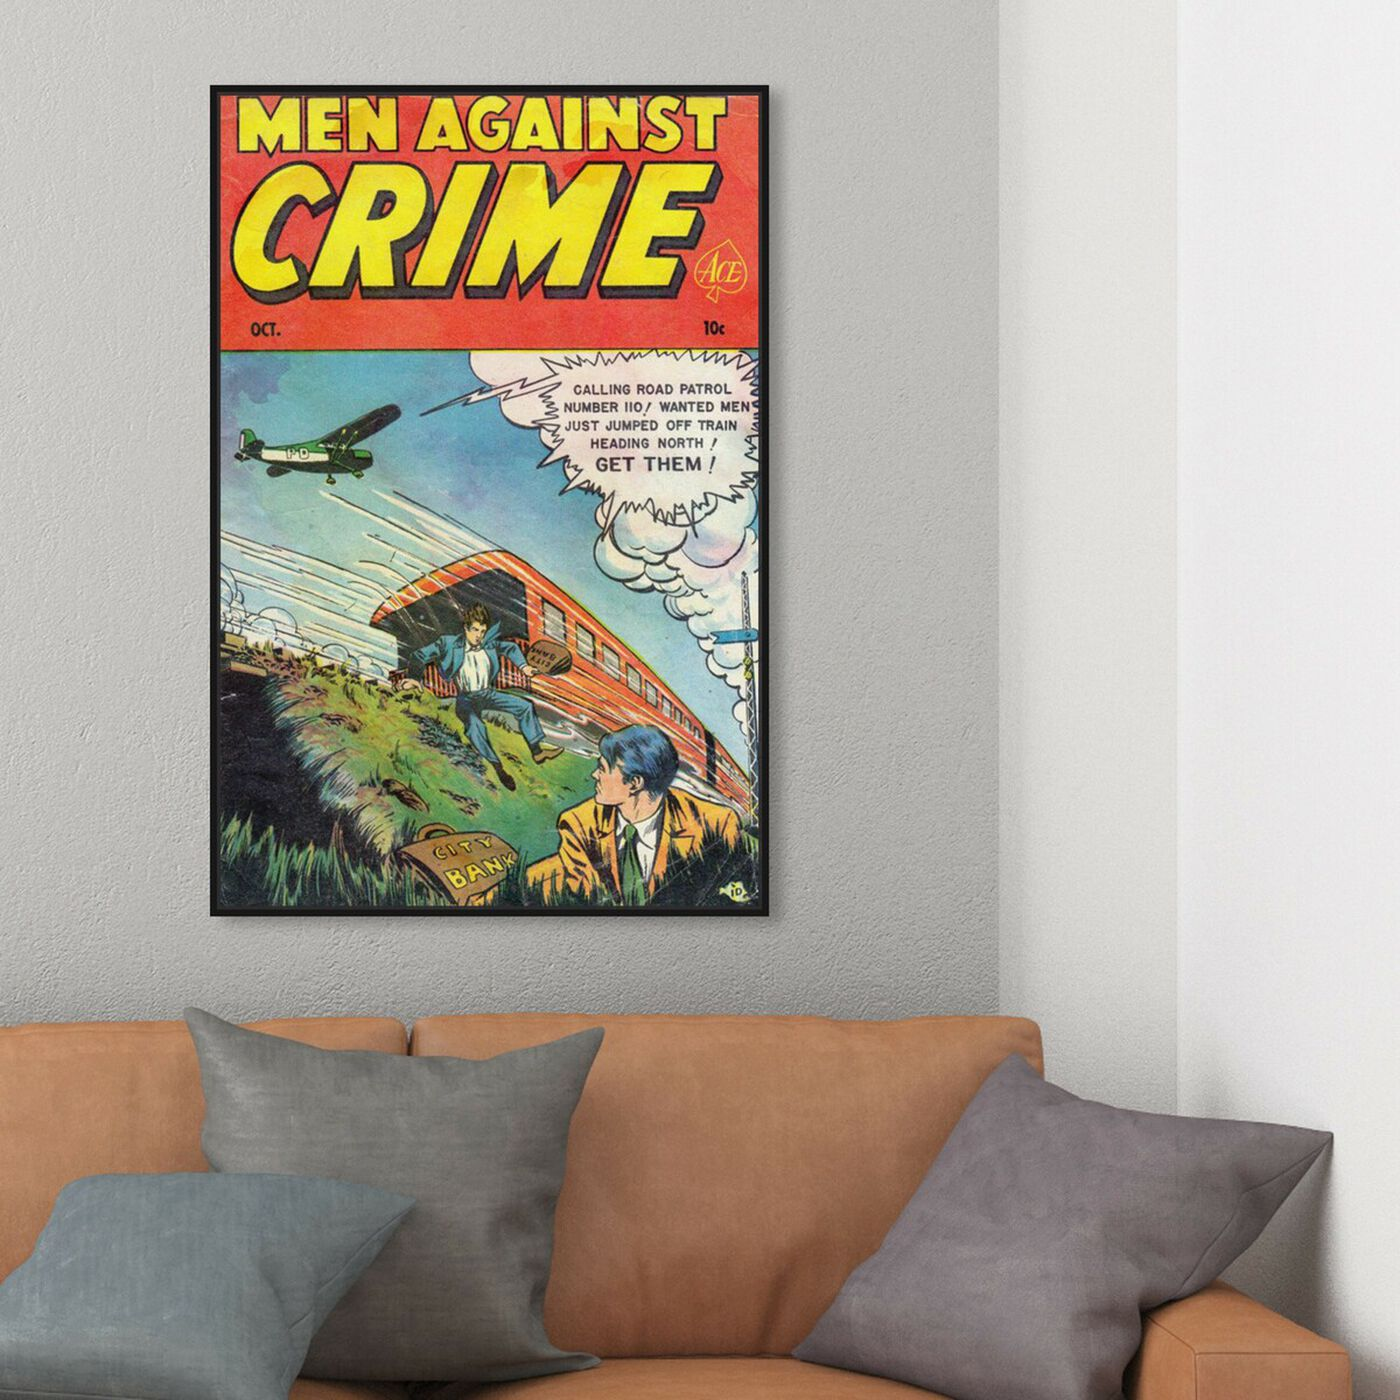 Hanging view of Men Against Crime No.7, 1951 featuring advertising and comics art.